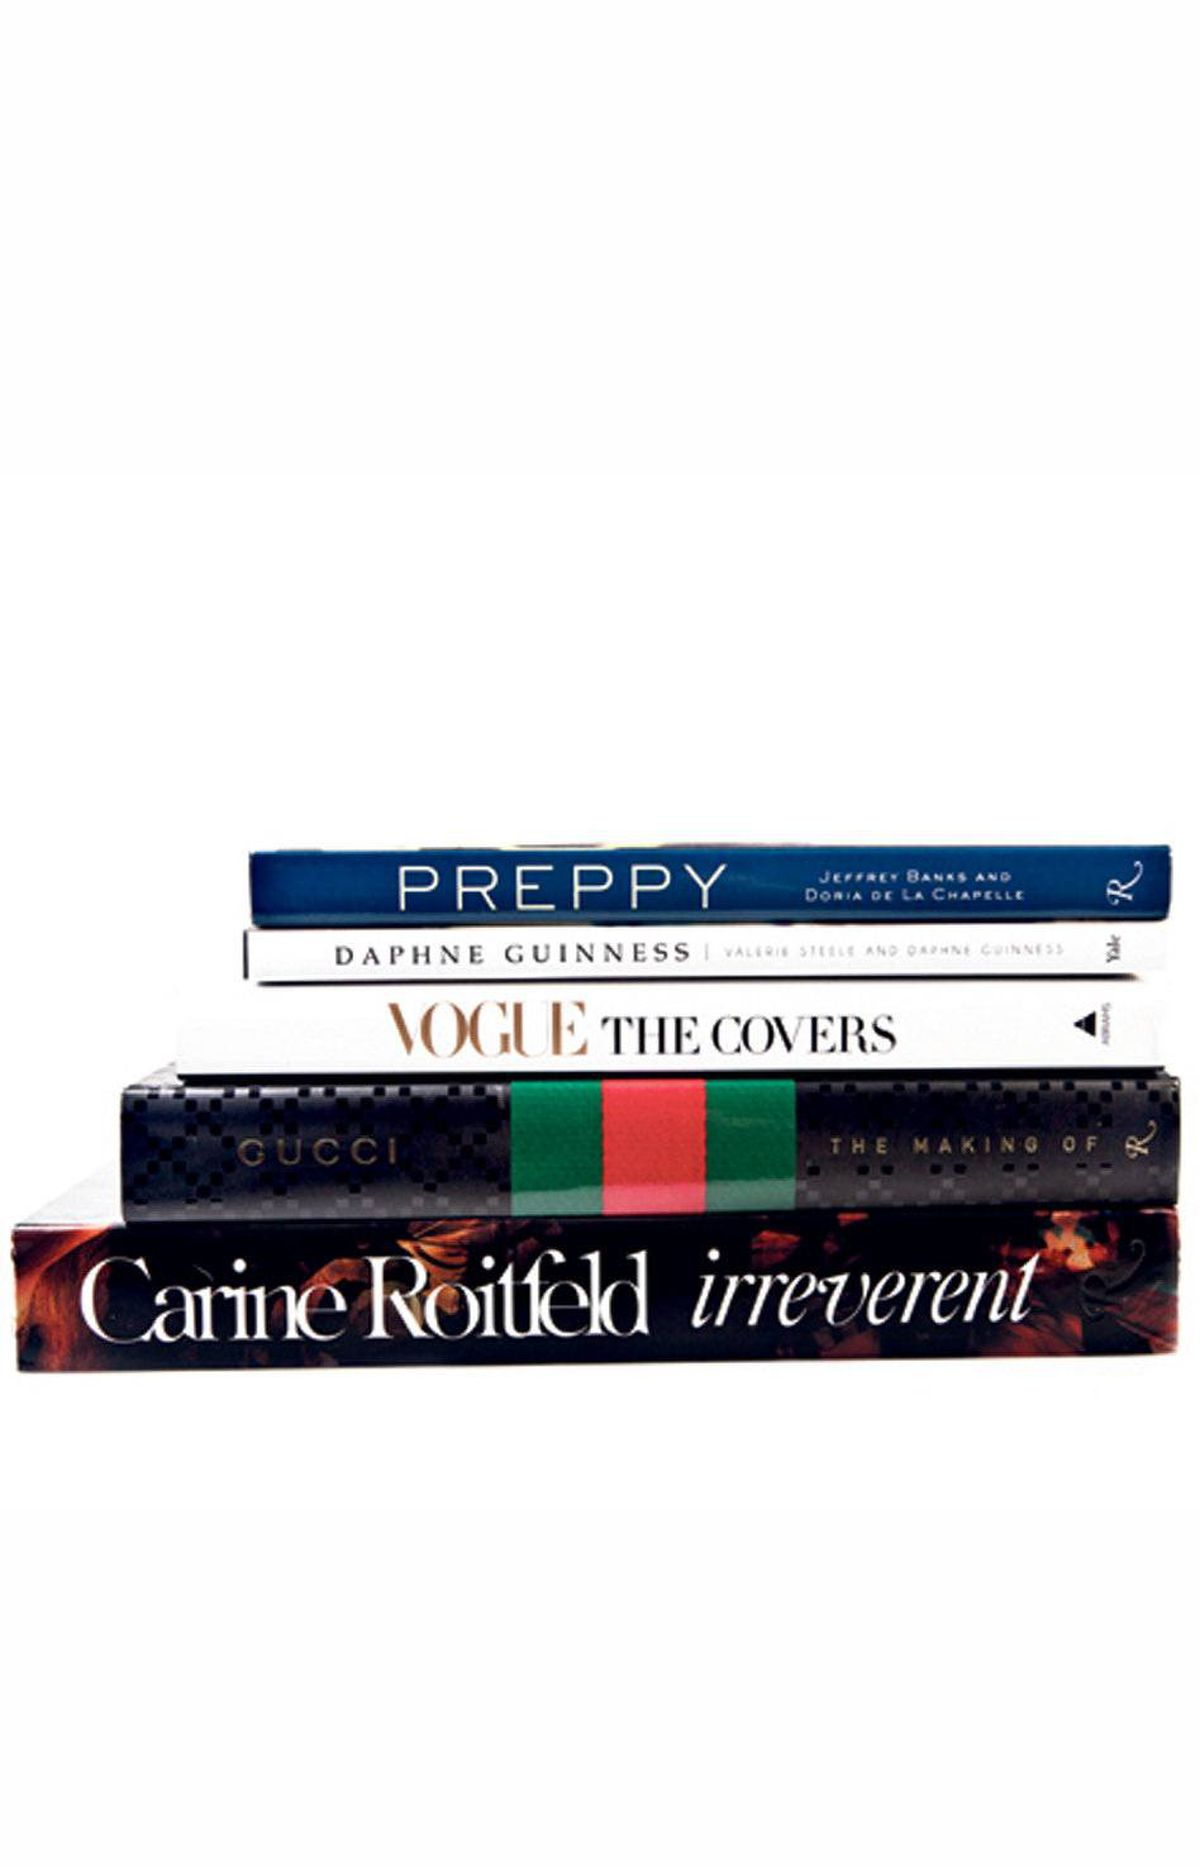 Preppy: Cultivating Ivy Style, Daphne Guinness, Vogue: The Covers, The Making of Gucci, Carine Roitfeld: Irreverent, $45 to $185 through www.amazon.ca.